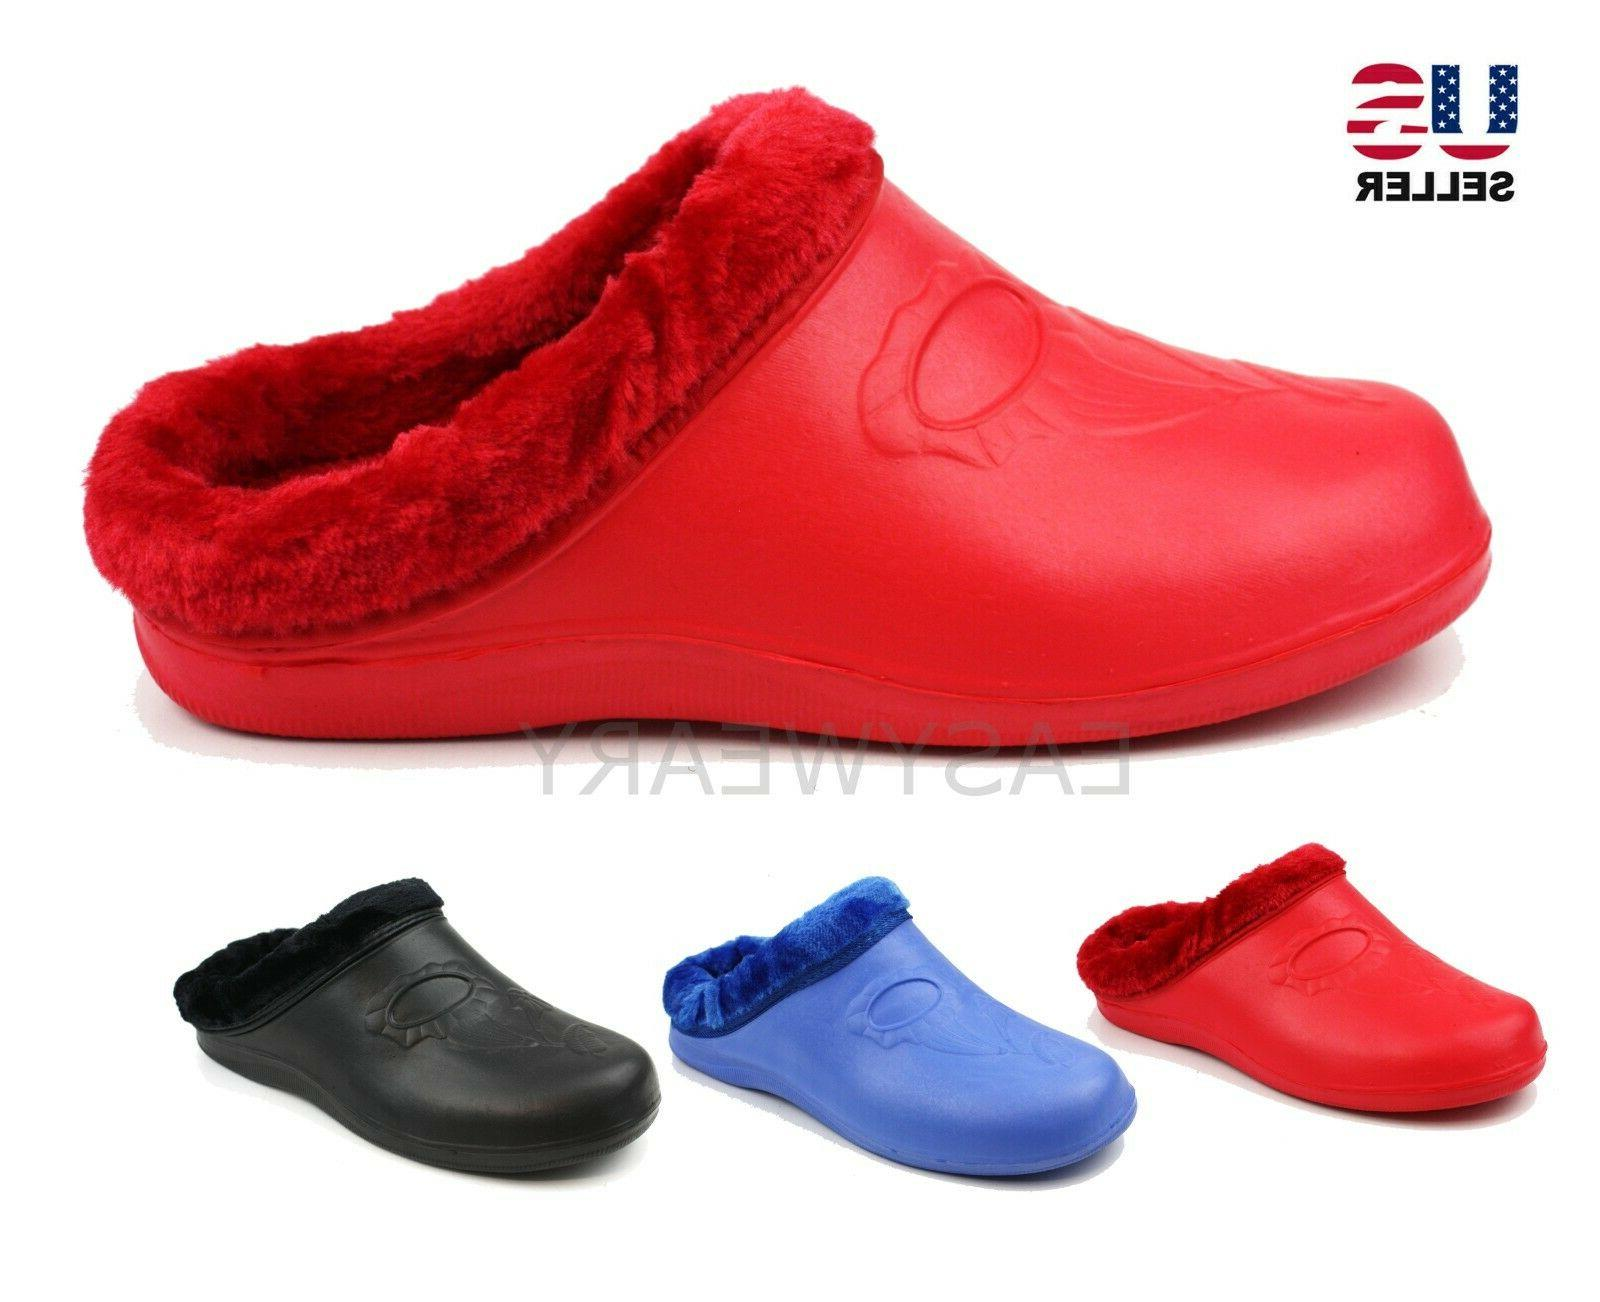 womens fleece lined warm winter slippers clogs